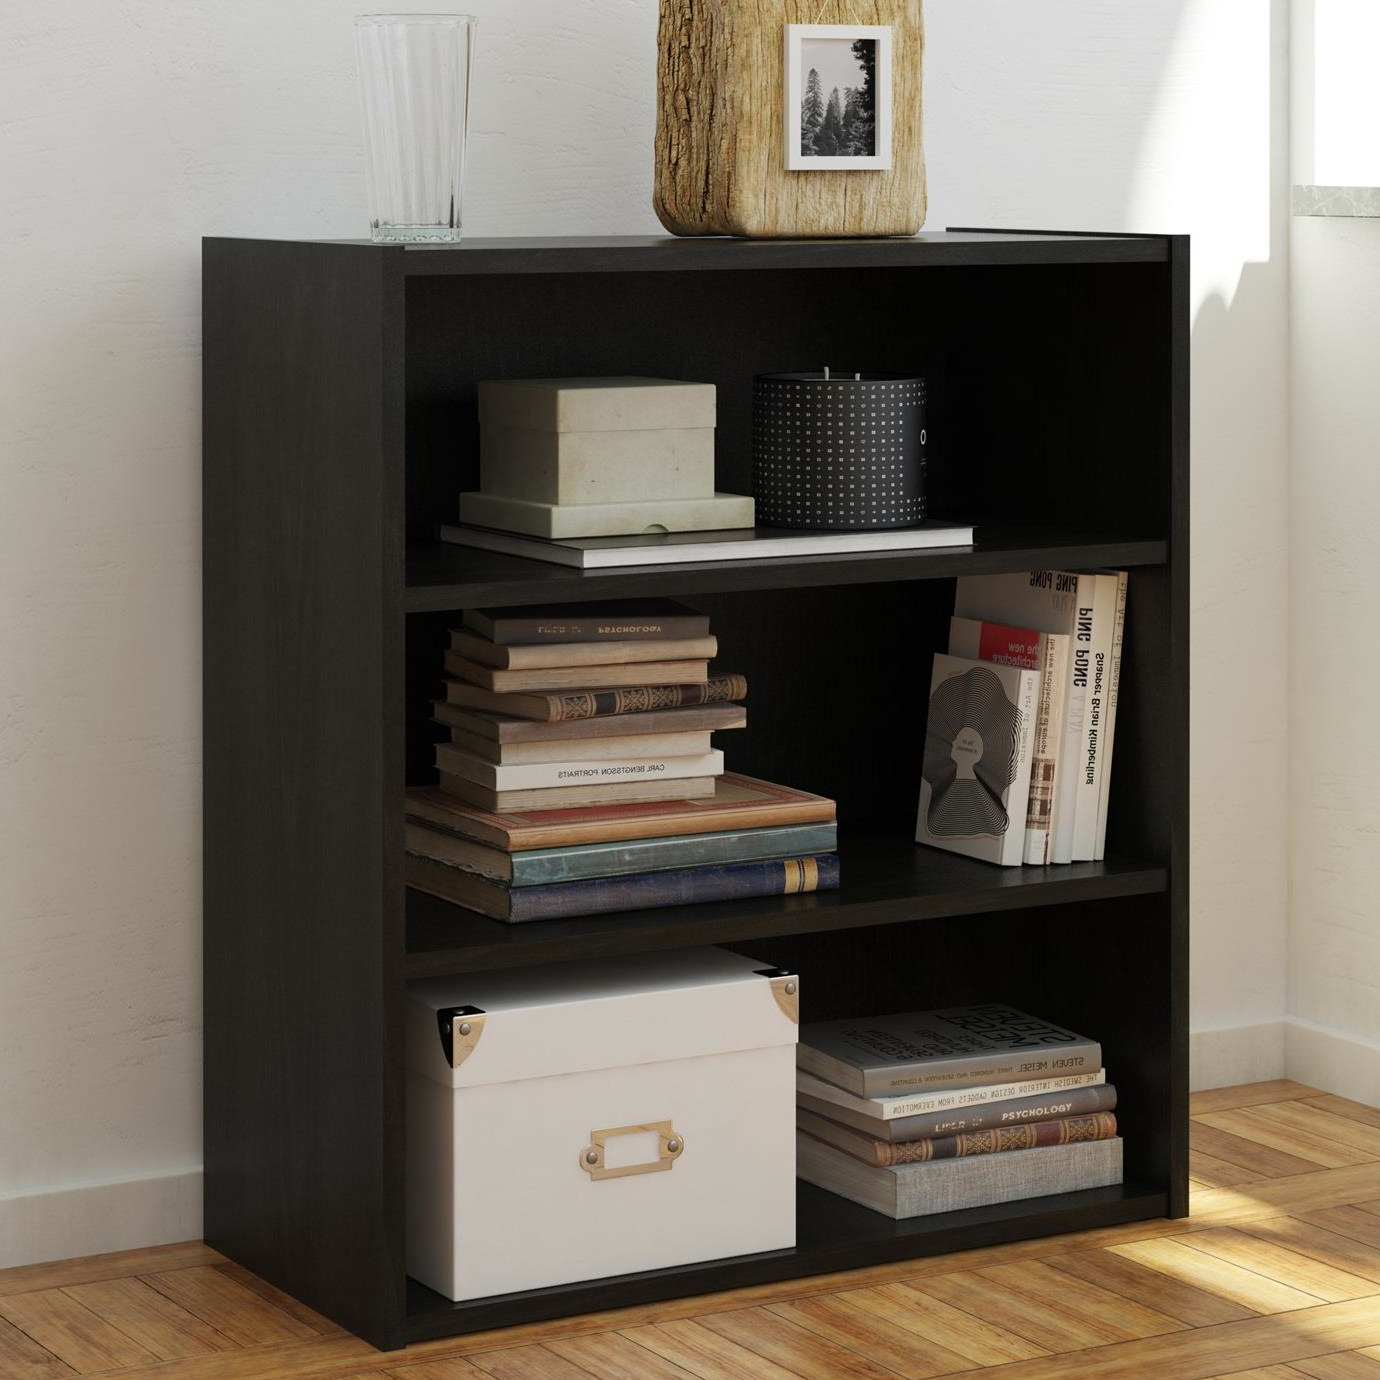 Widely Used Herrin 2 Tier Standard Bookcases In Rialto Standard Bookcase (View 20 of 20)